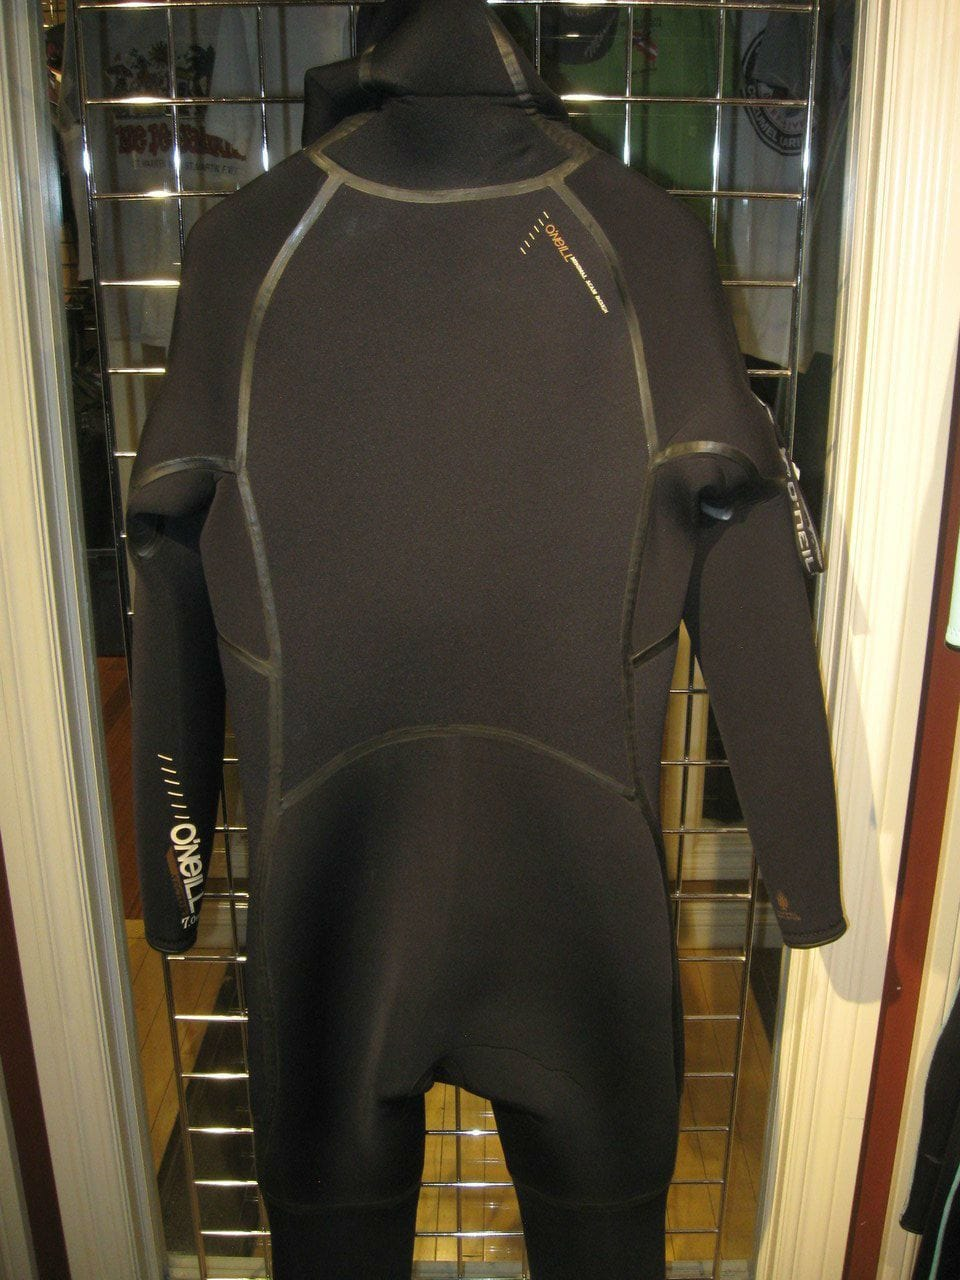 O'Neill 7mm JType Fullsuit Size Large (Very Gently Used) Reduced!